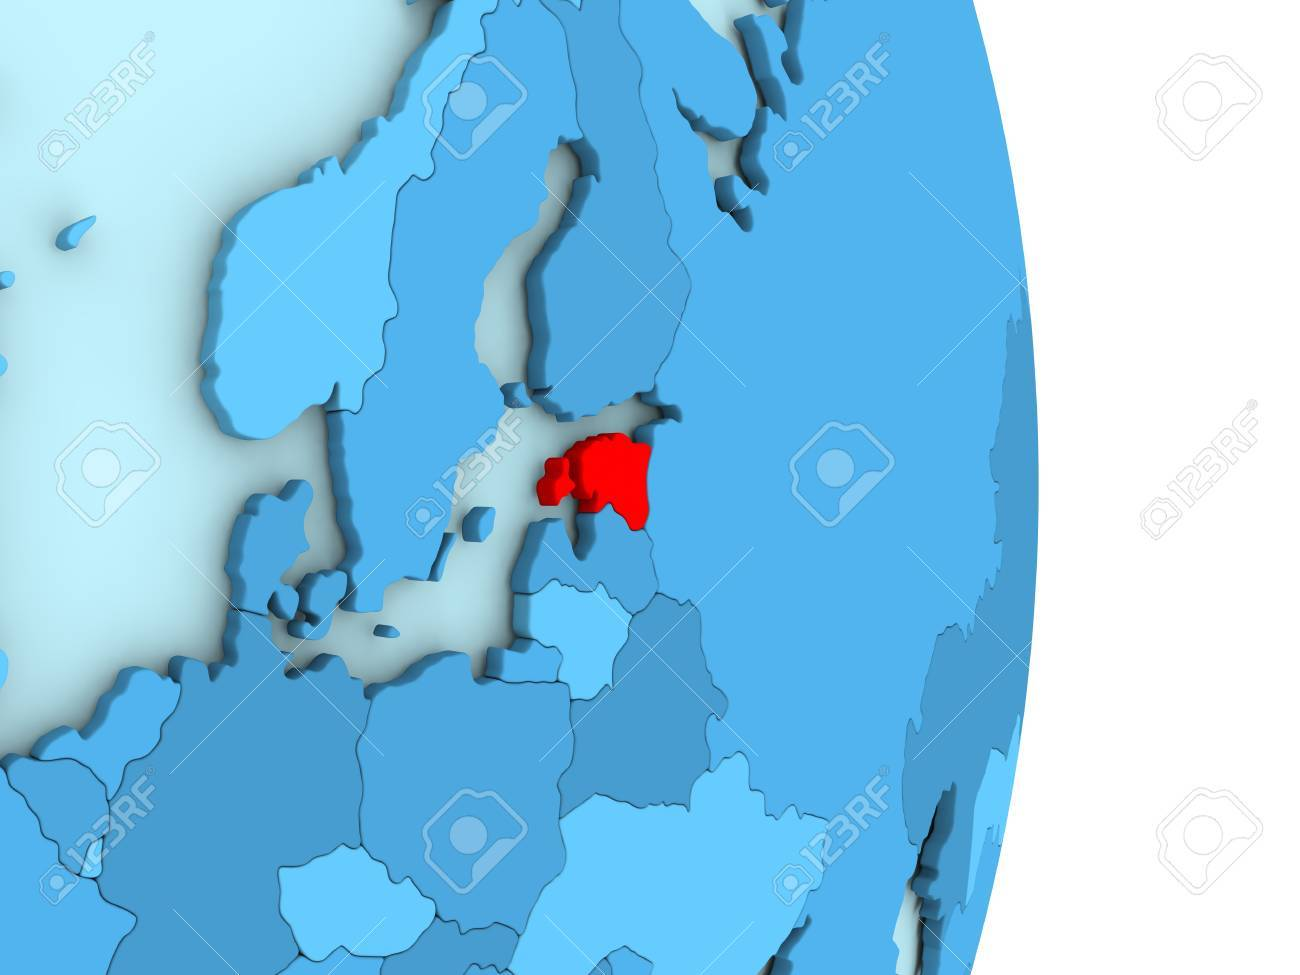 Map of estonia on blue globe with visible country borders and illustration map of estonia on blue globe with visible country borders and countries in different shades of blue 3d illustration gumiabroncs Gallery